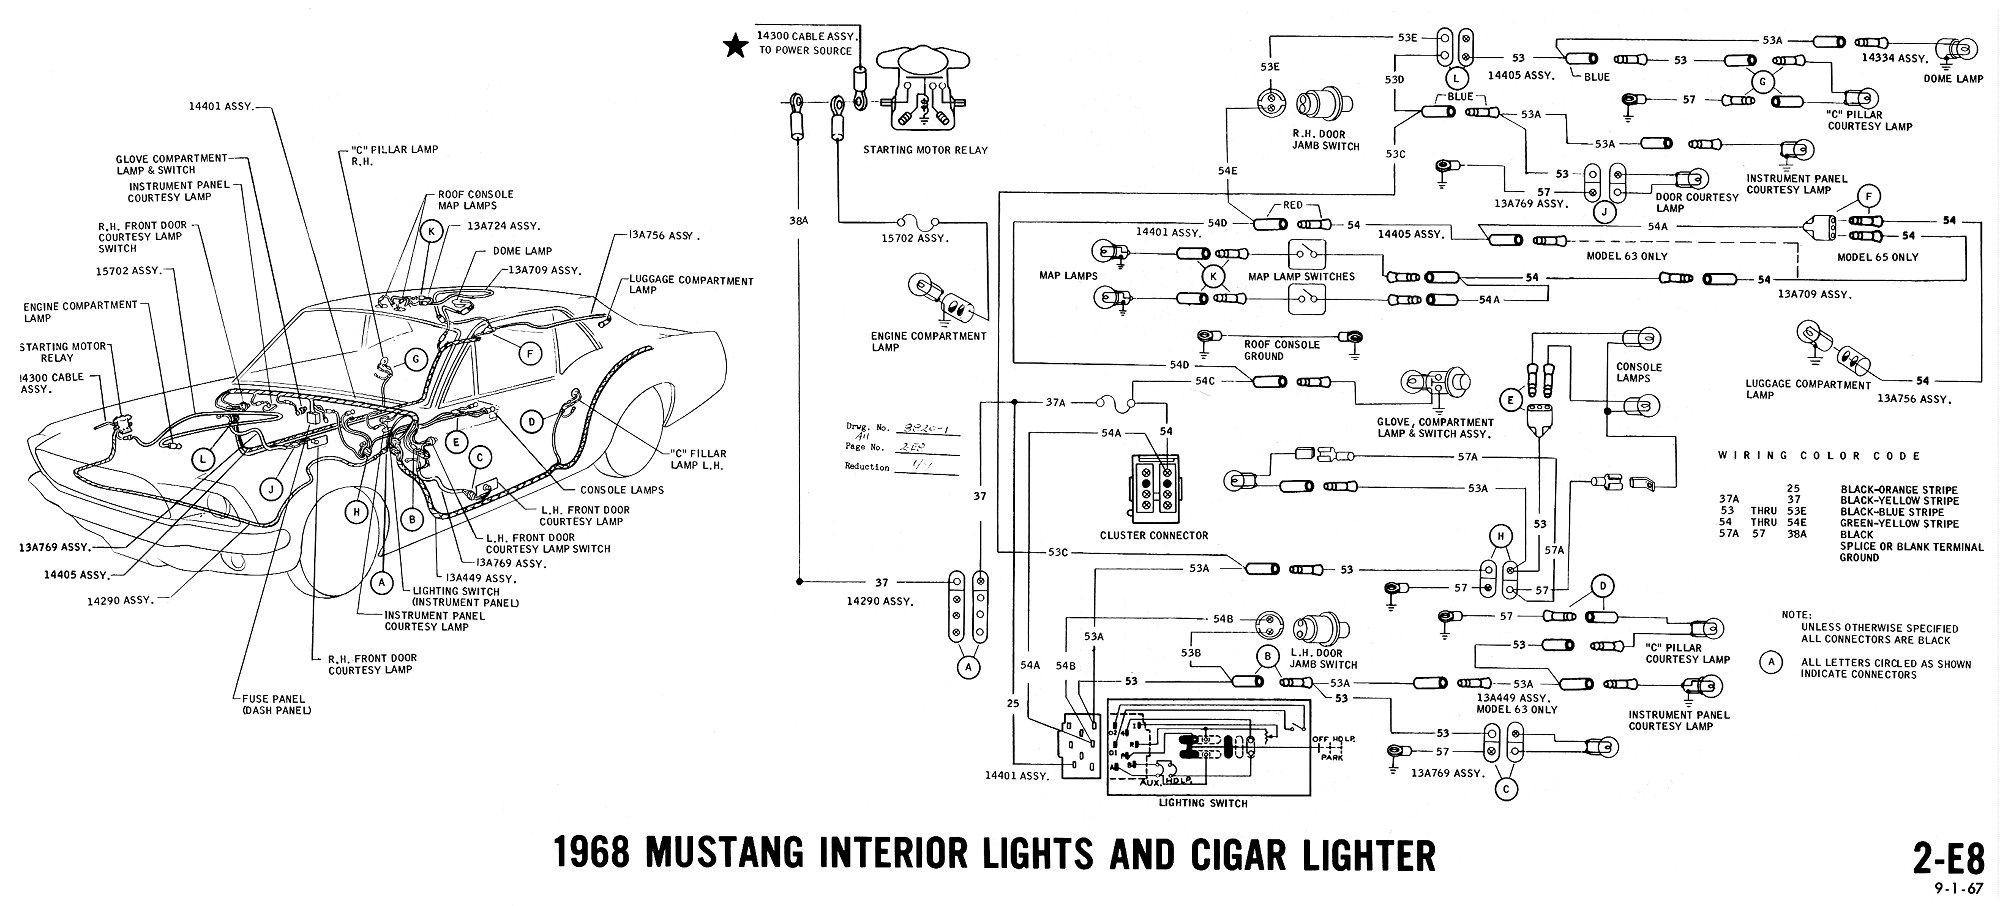 E8 66 mustang wiring diagram radio tape 66 mustang fuse diagram res radio wiring diagram at alyssarenee.co